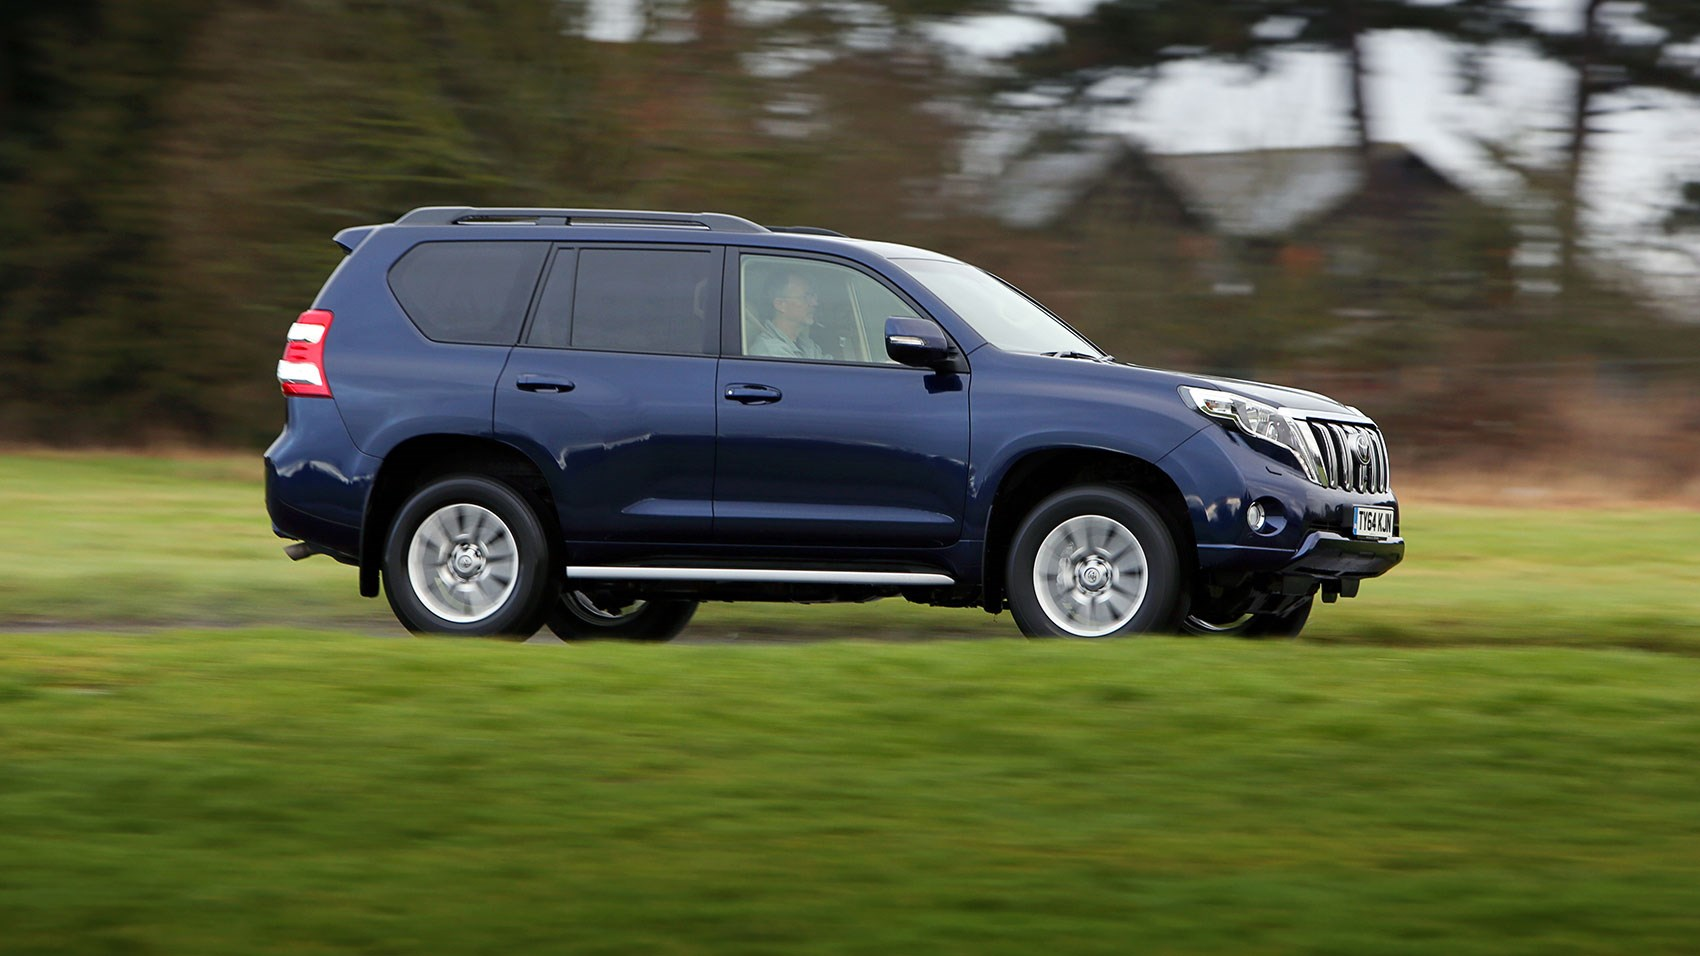 Ds New Model Blitz Begins With Suv Car Magazine Toyota Land Cruiser Three Rows Of Seats In The